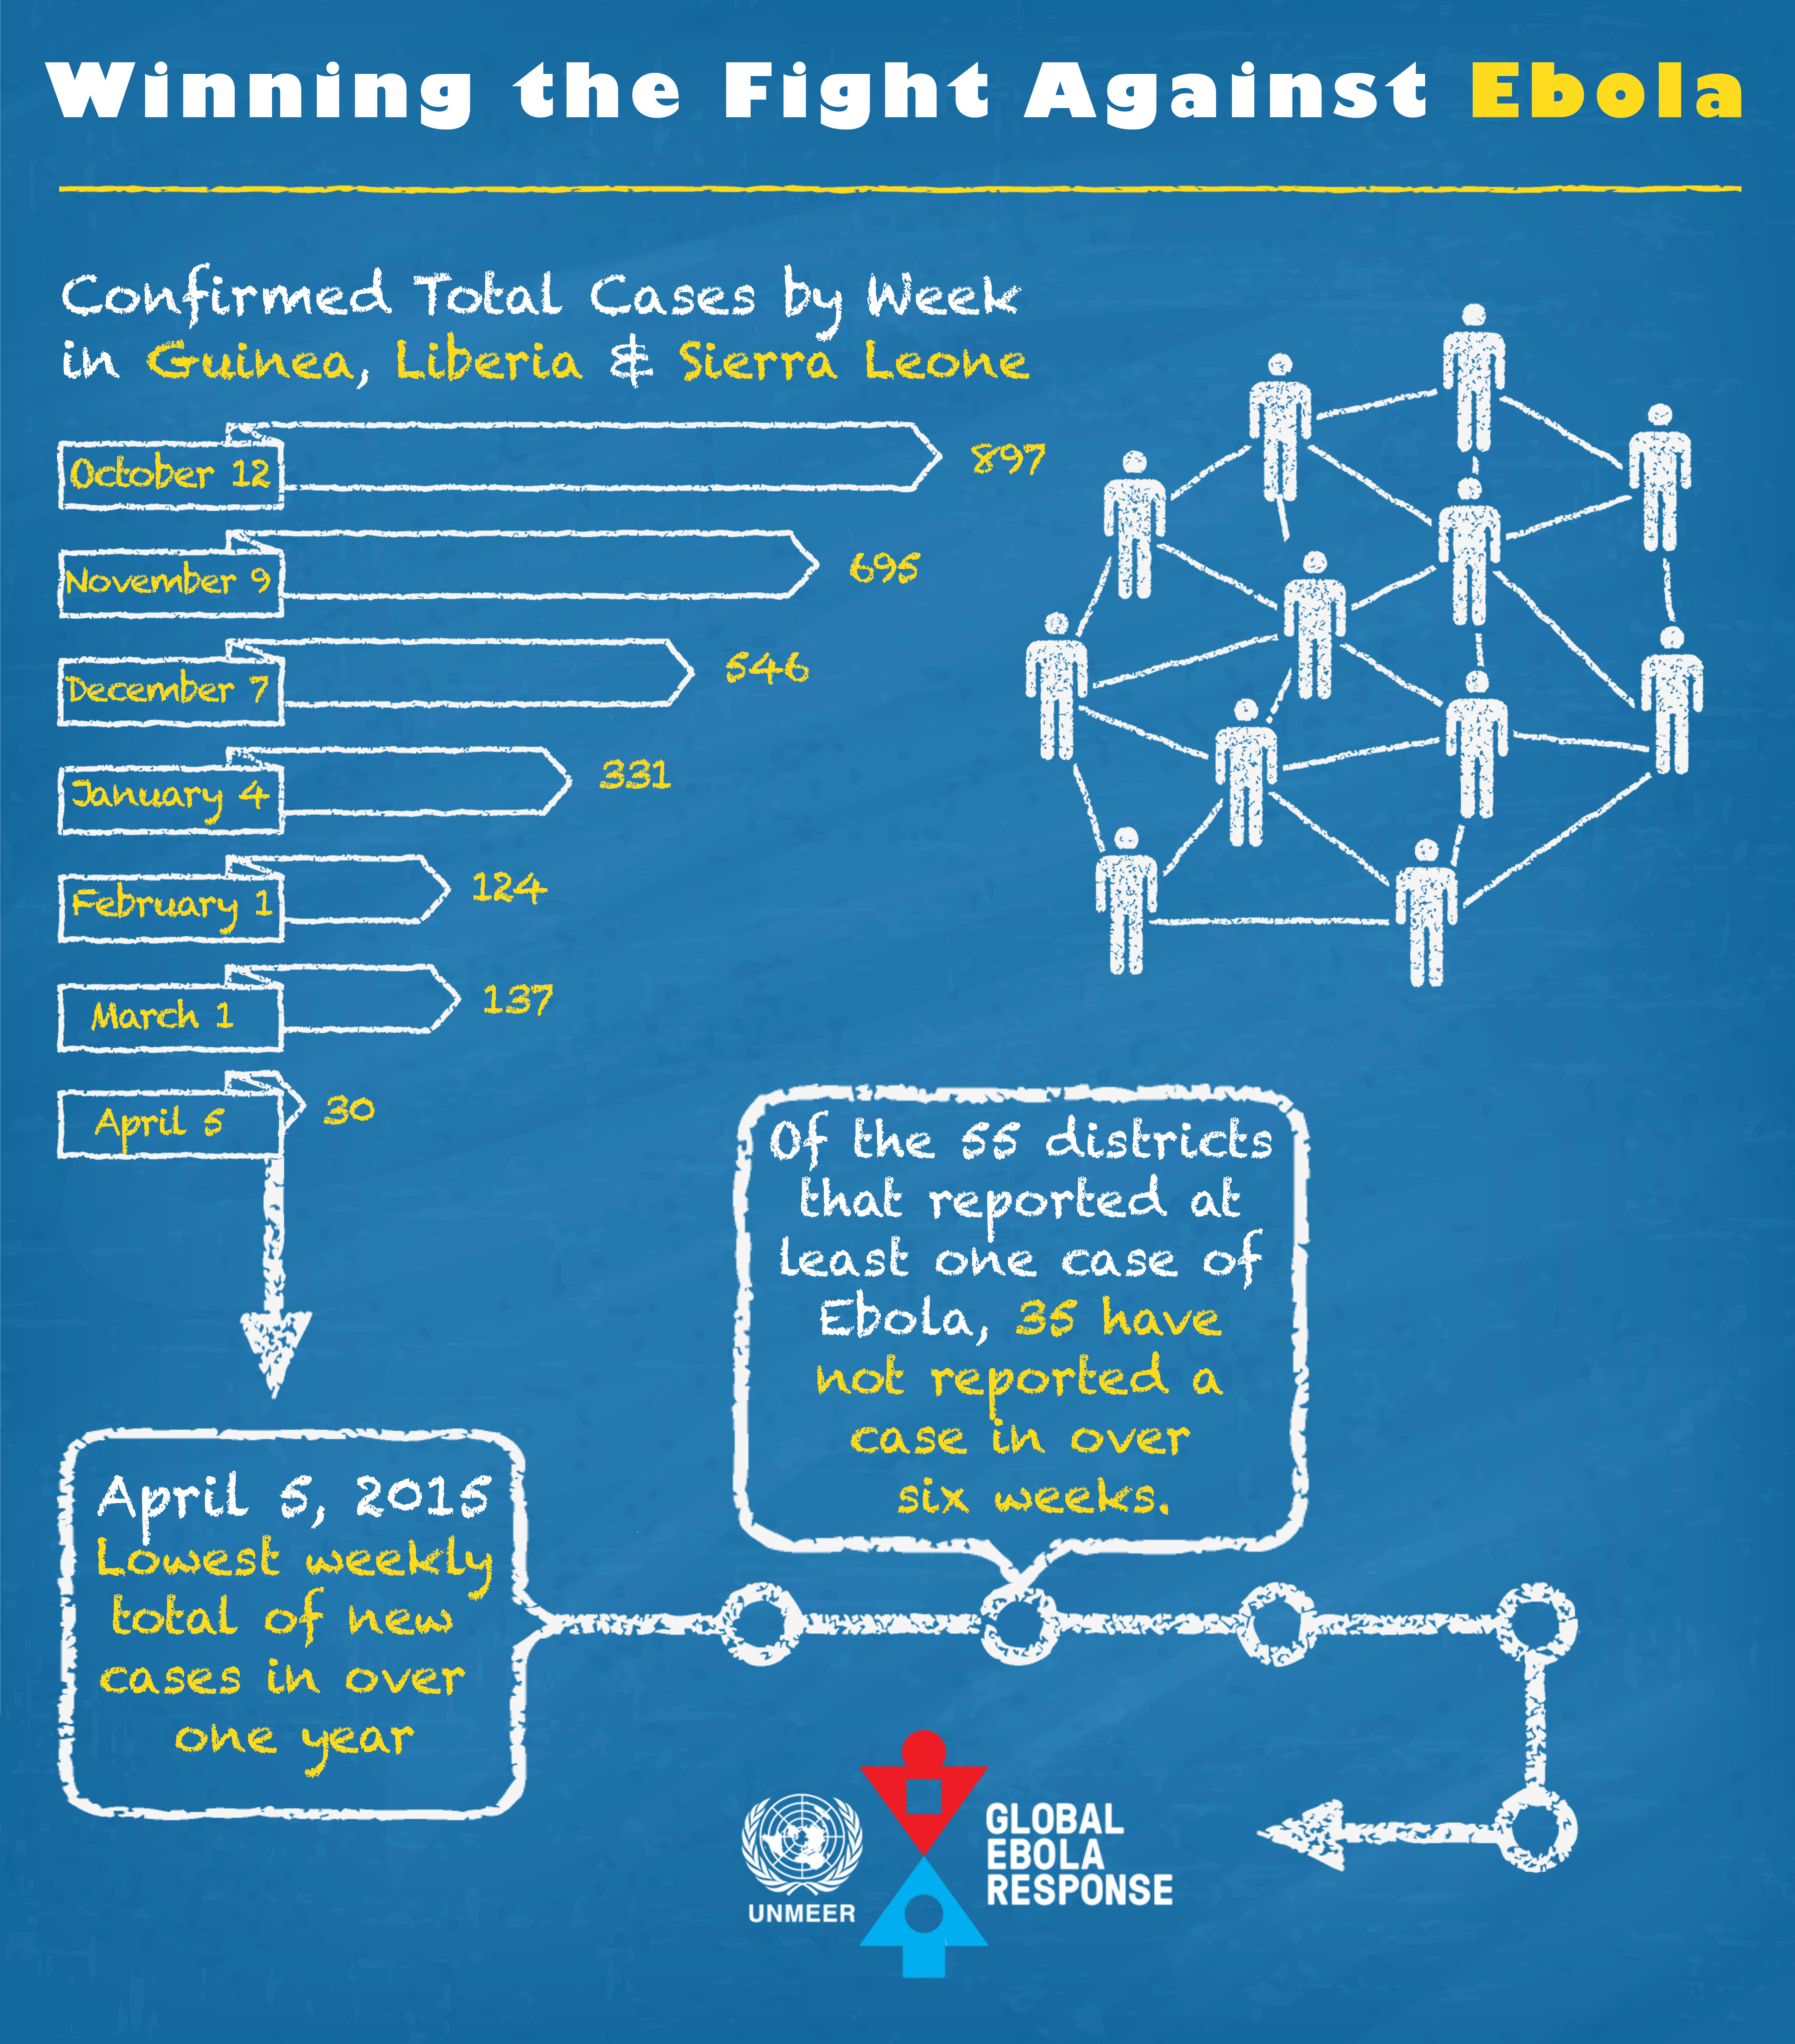 Winning the fight against Ebola - Infography